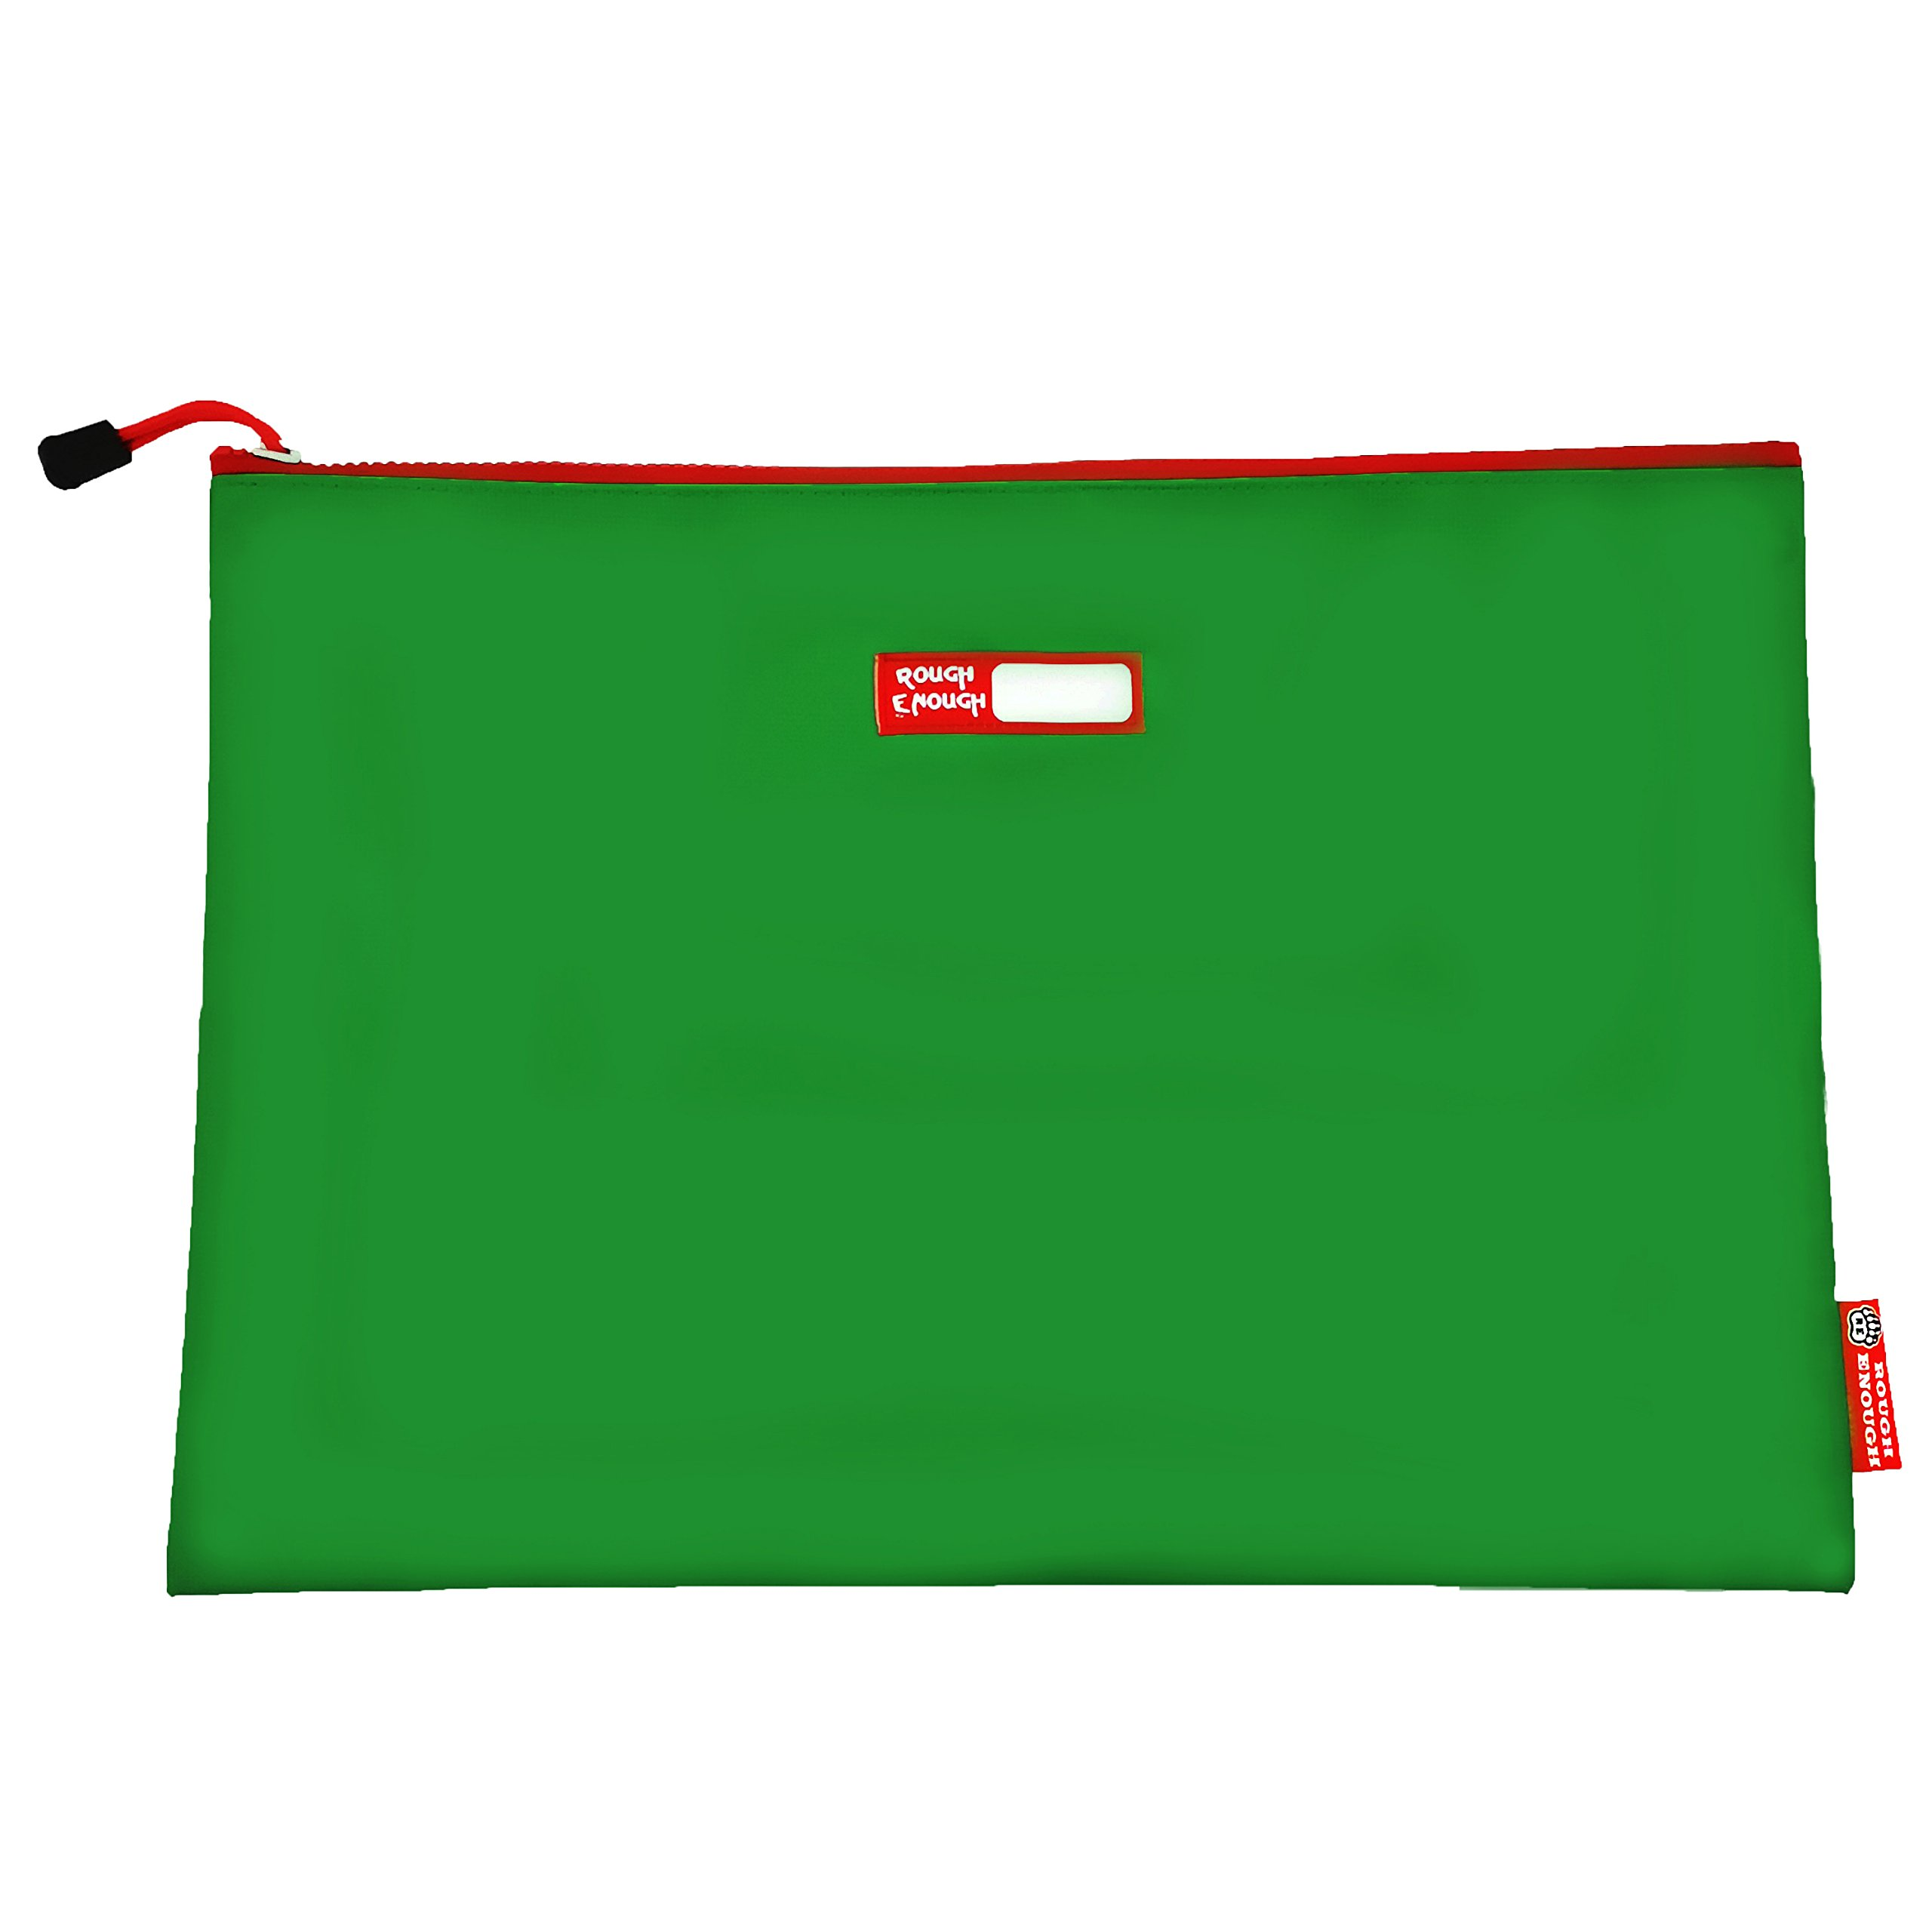 Rough Enough Tarpaulin Classic Durable Big Document Pouch with Zippered A4 Size Important Storage Envelope Holder Large File Folder for Filing Accessories Pocket Organizer for School Business Green